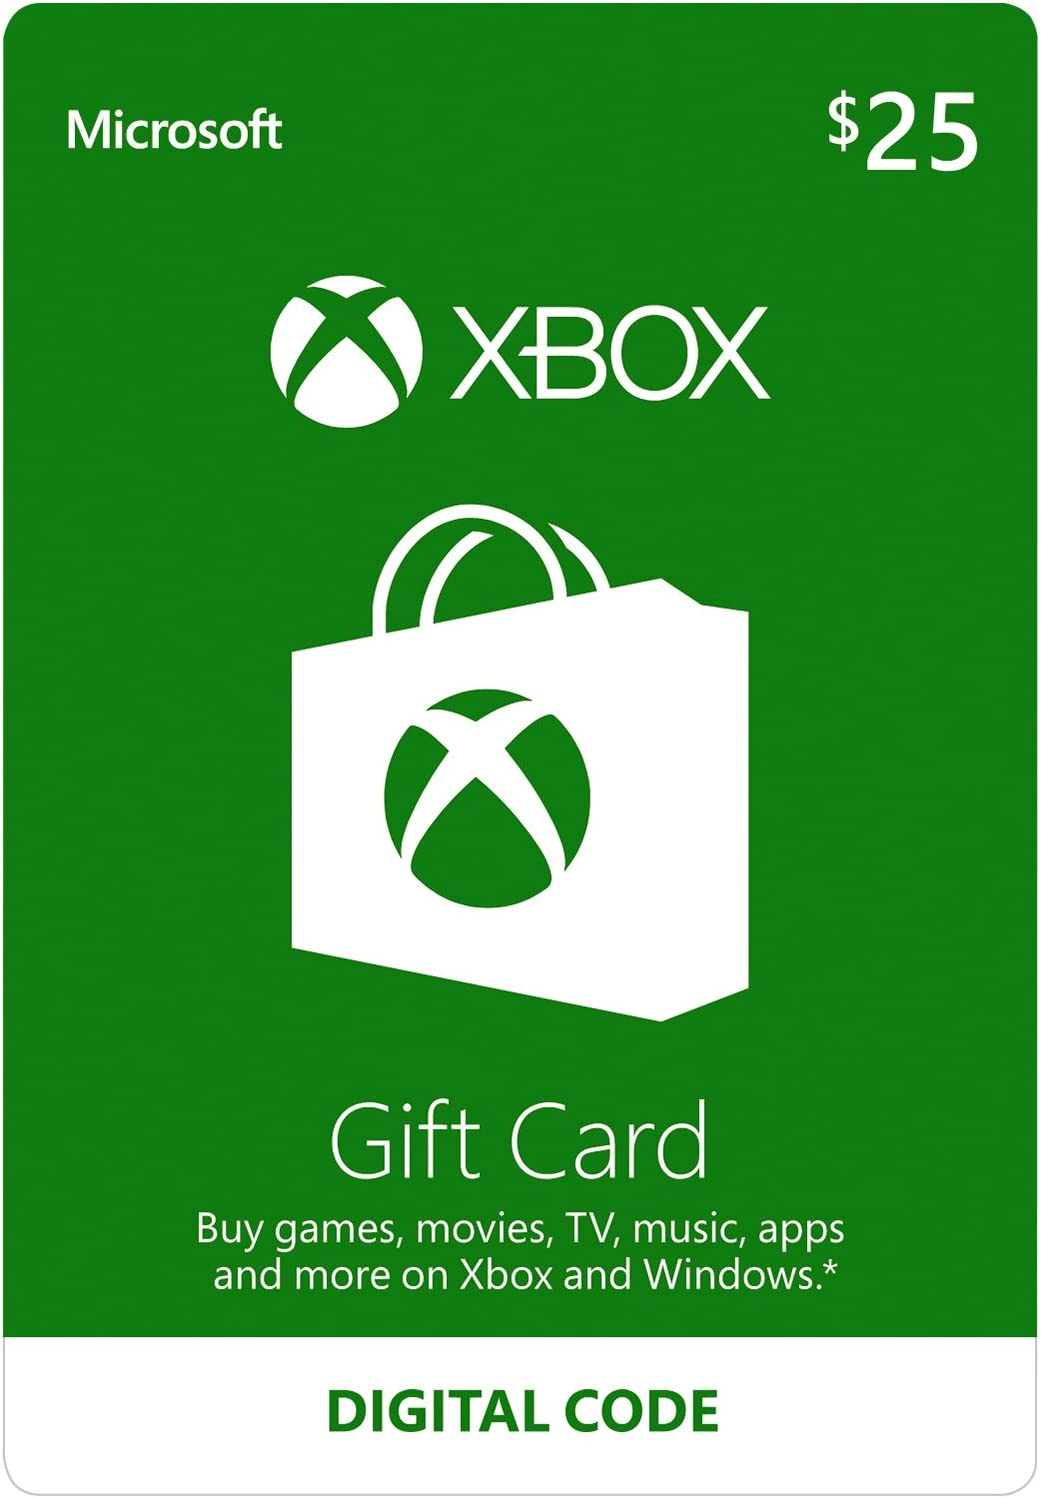 Amazon.com: $25 Xbox Gift Card - [Digital Code]: Video Games